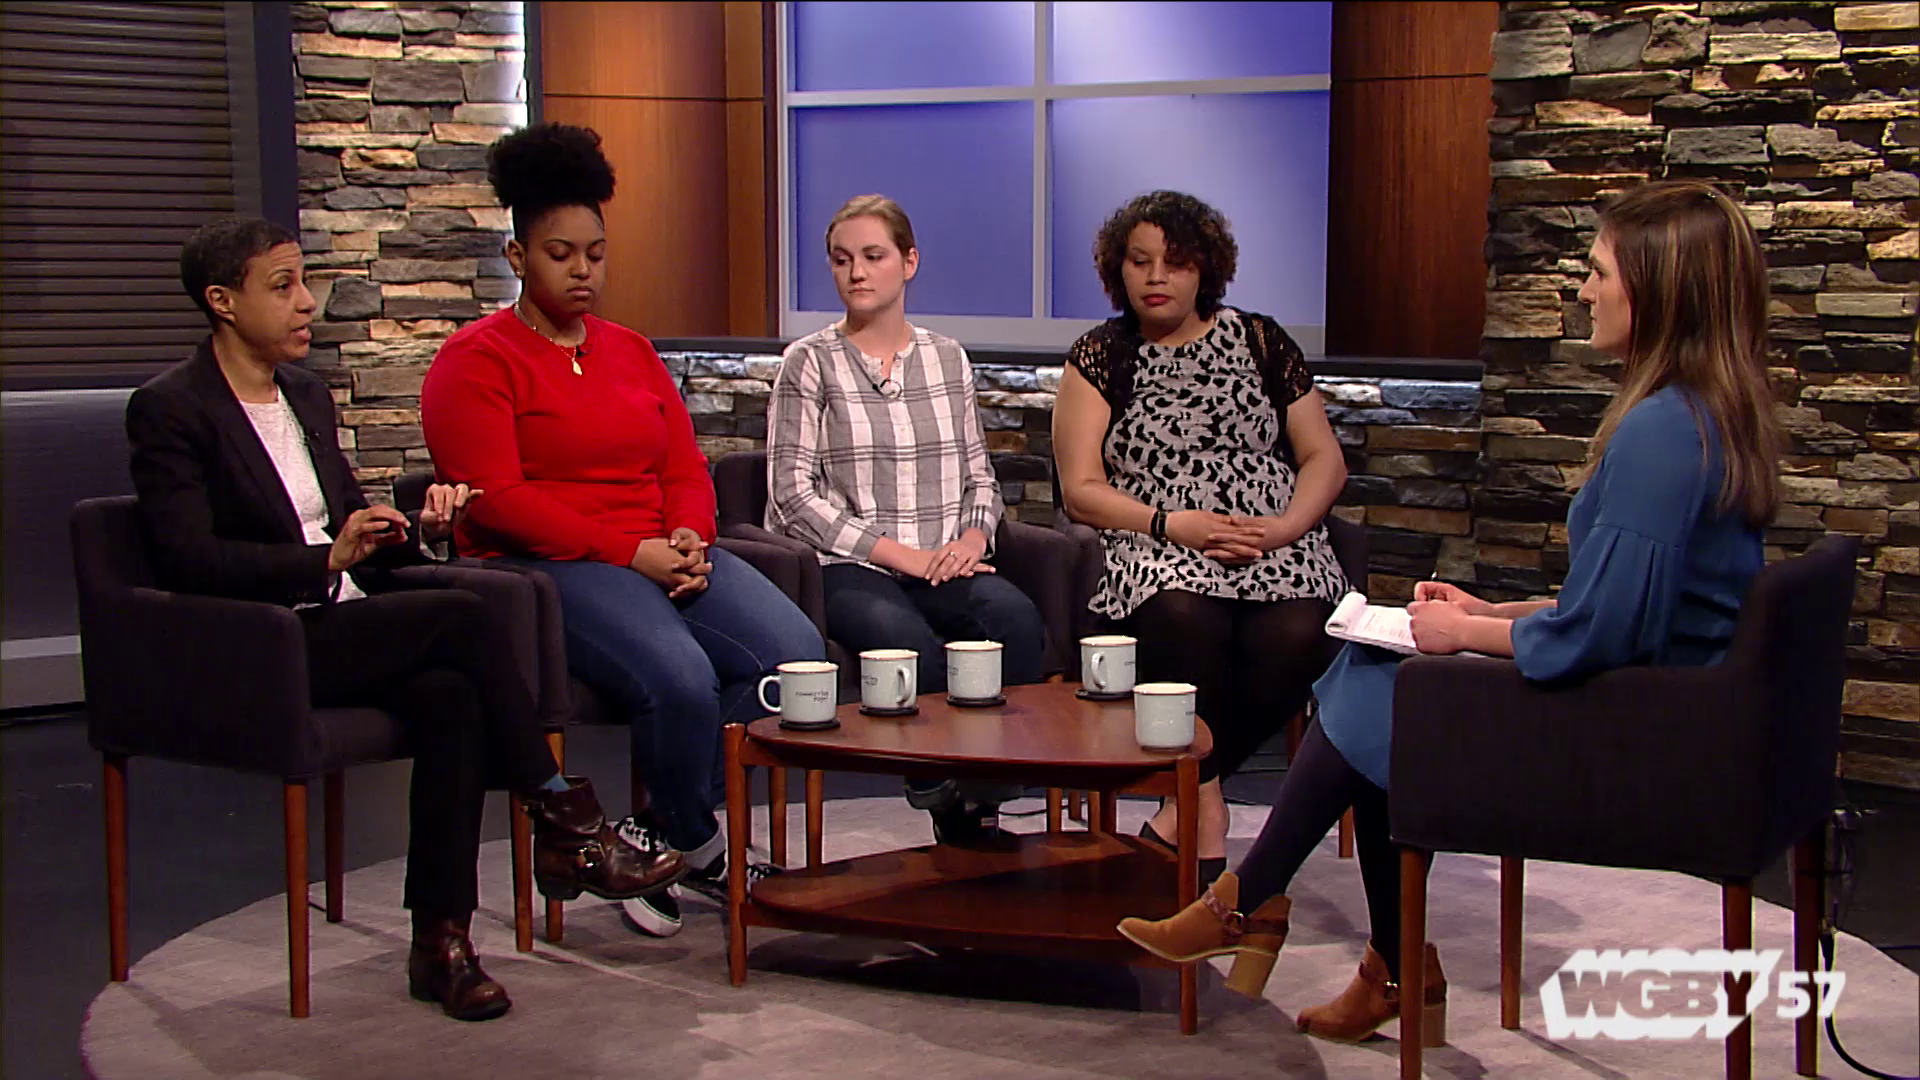 Smith College Professor Elizabeth Stordeur Pryor studies the impact of language on society, specifically the impact of ethnic slurs and racist language. Her approach was framed, in part, by her experience as a biracial woman in the United States. Carrie Saldo sat down with Pryor and three of her students to learn more.